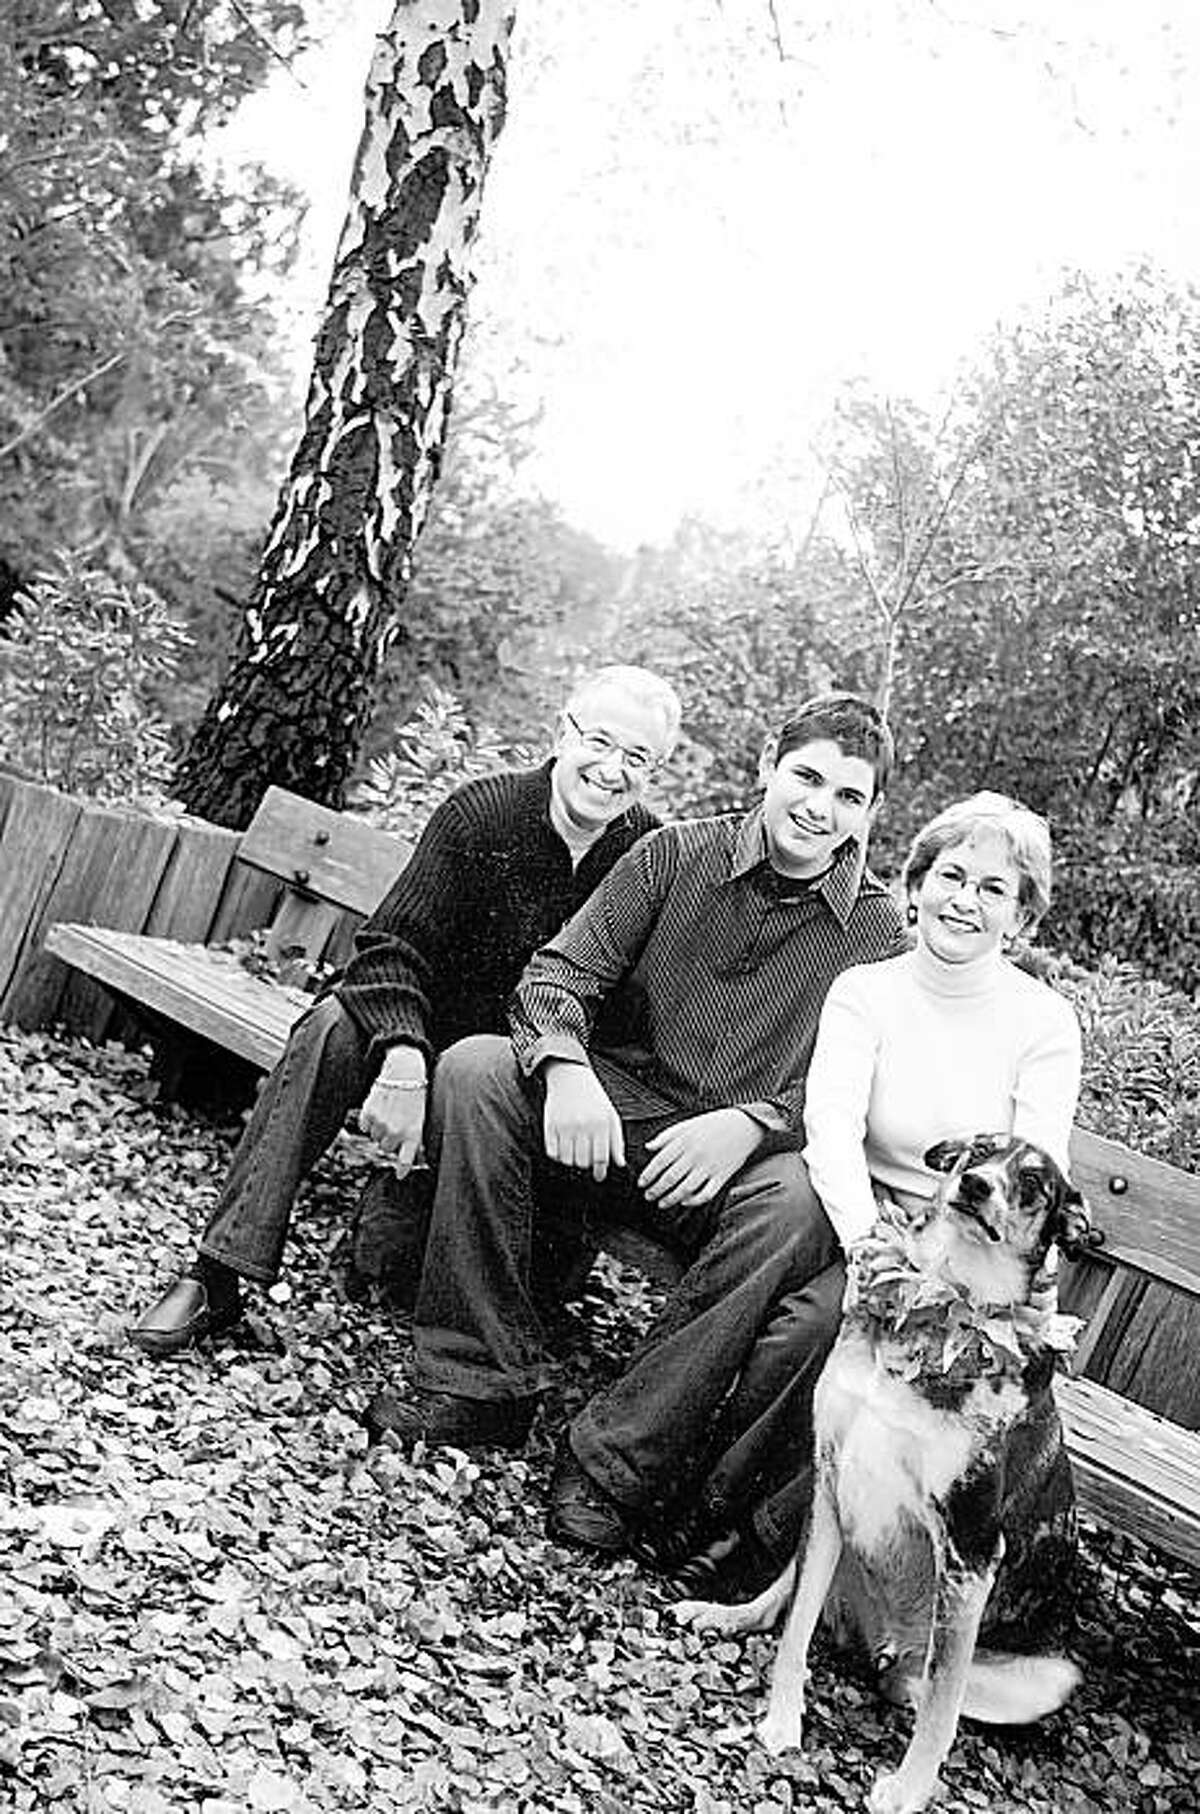 The Tompkins family visited the Marin Art and Garden Center in Ross in December 2008. From the left, Barry Tompkins, Ryan Tompkins, Joan Ryan and the family dog, Bill.